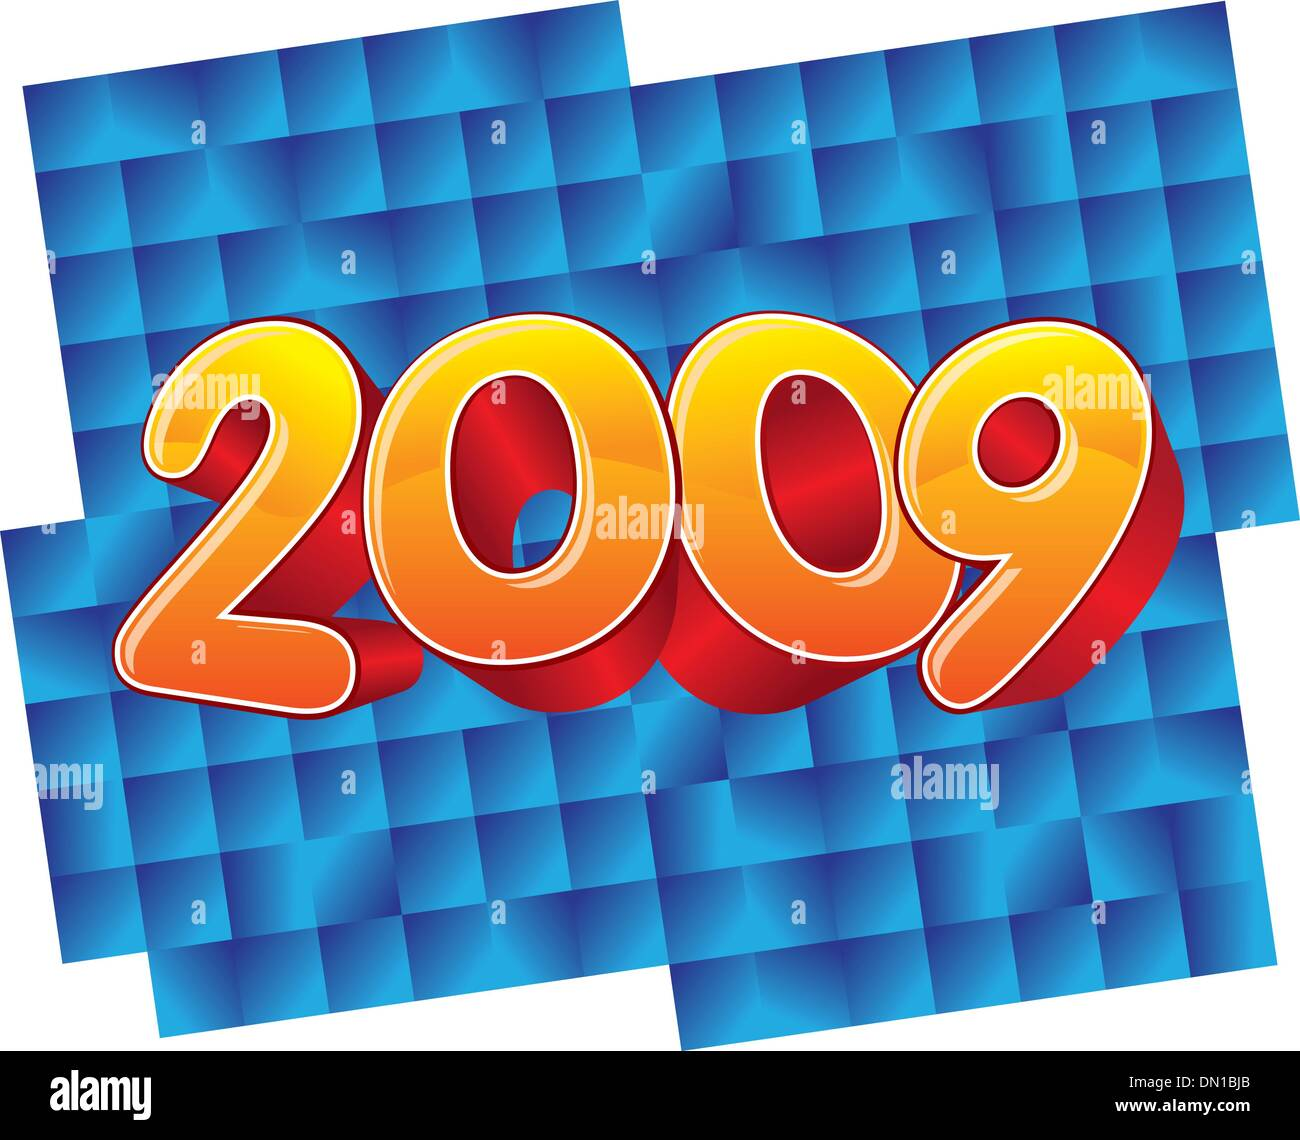 2009 new year celebration - Stock Vector